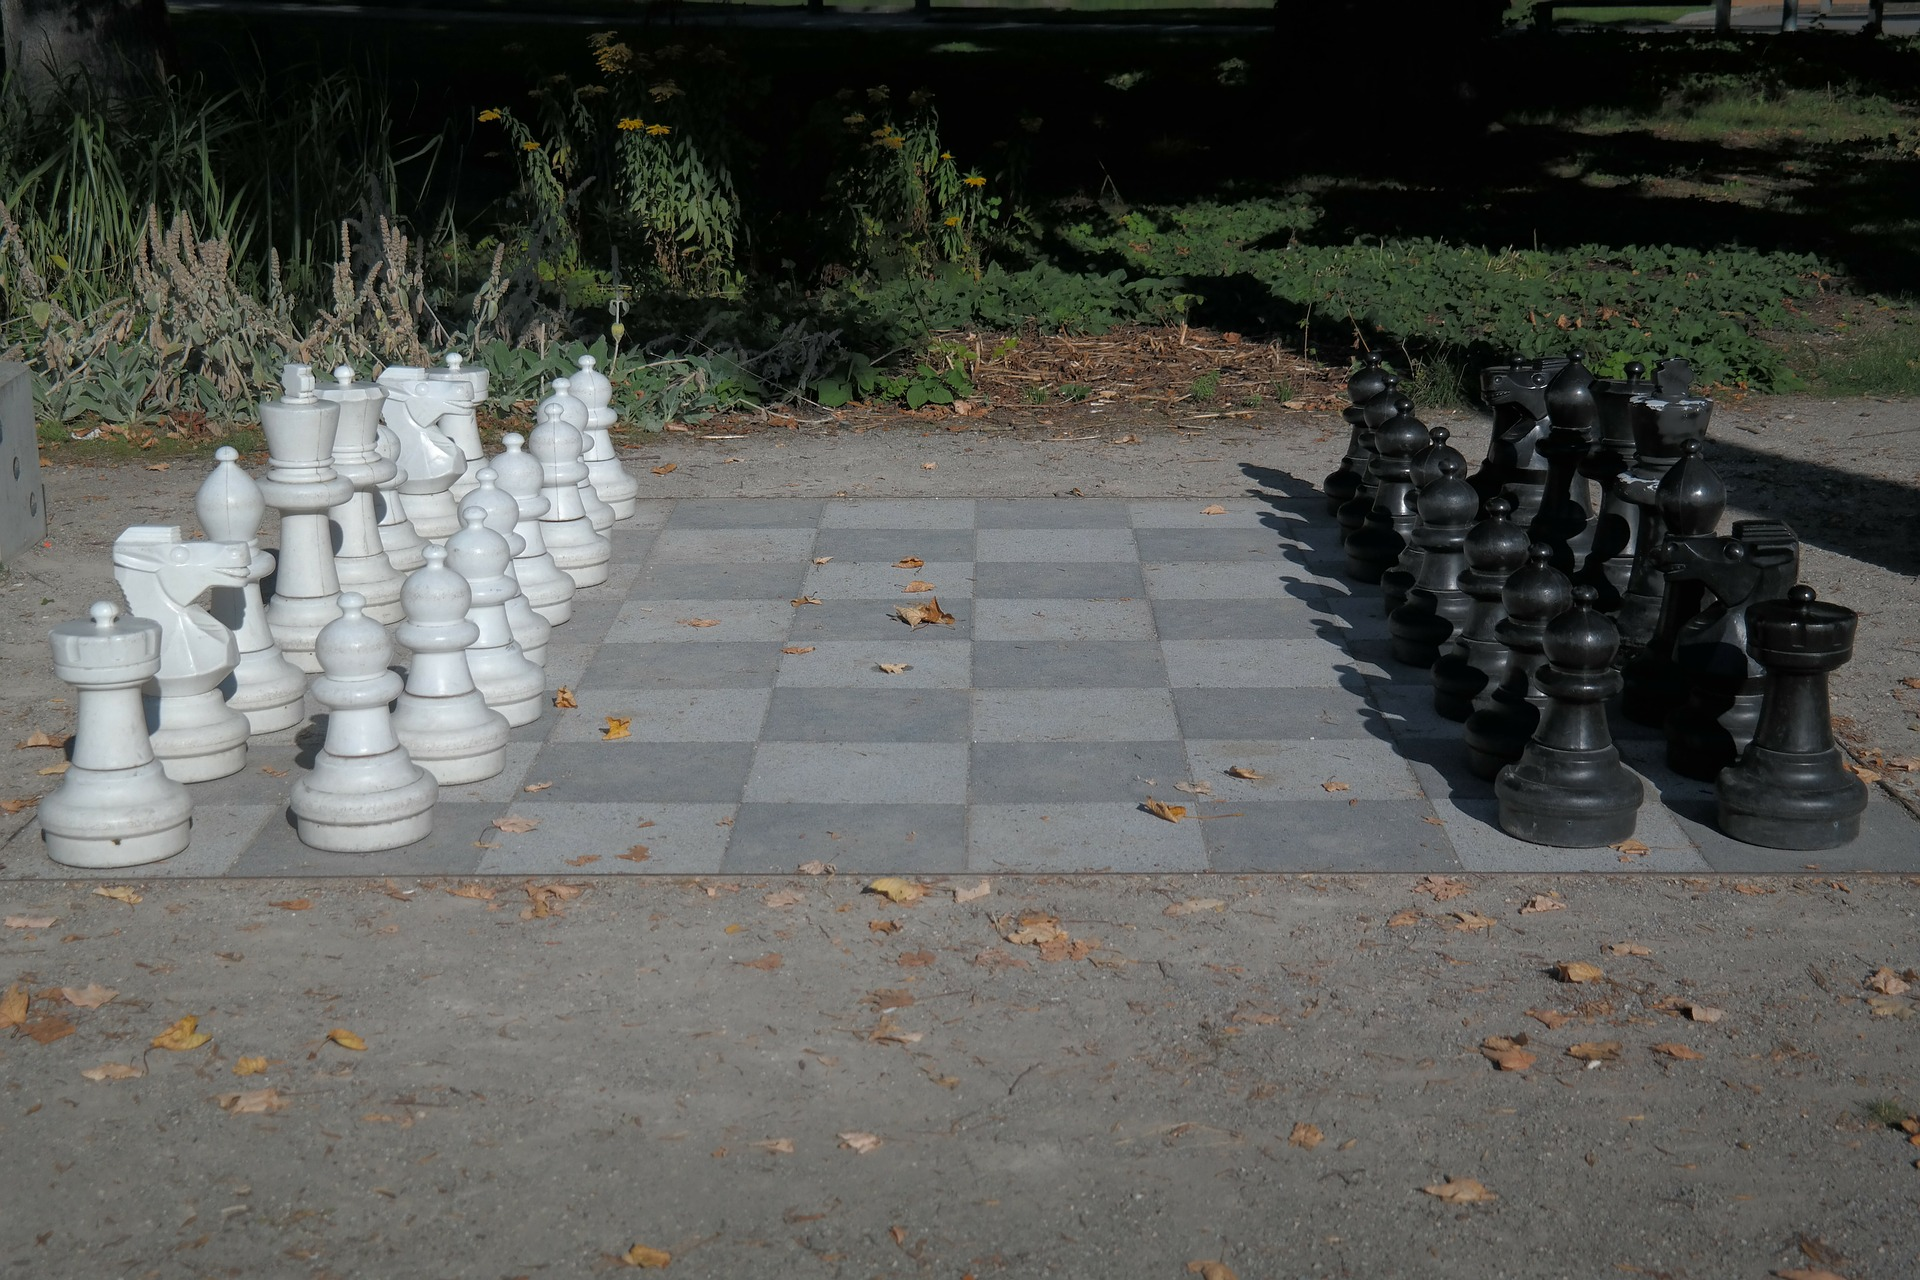 Benefits of Chess – Chess in the Classroom